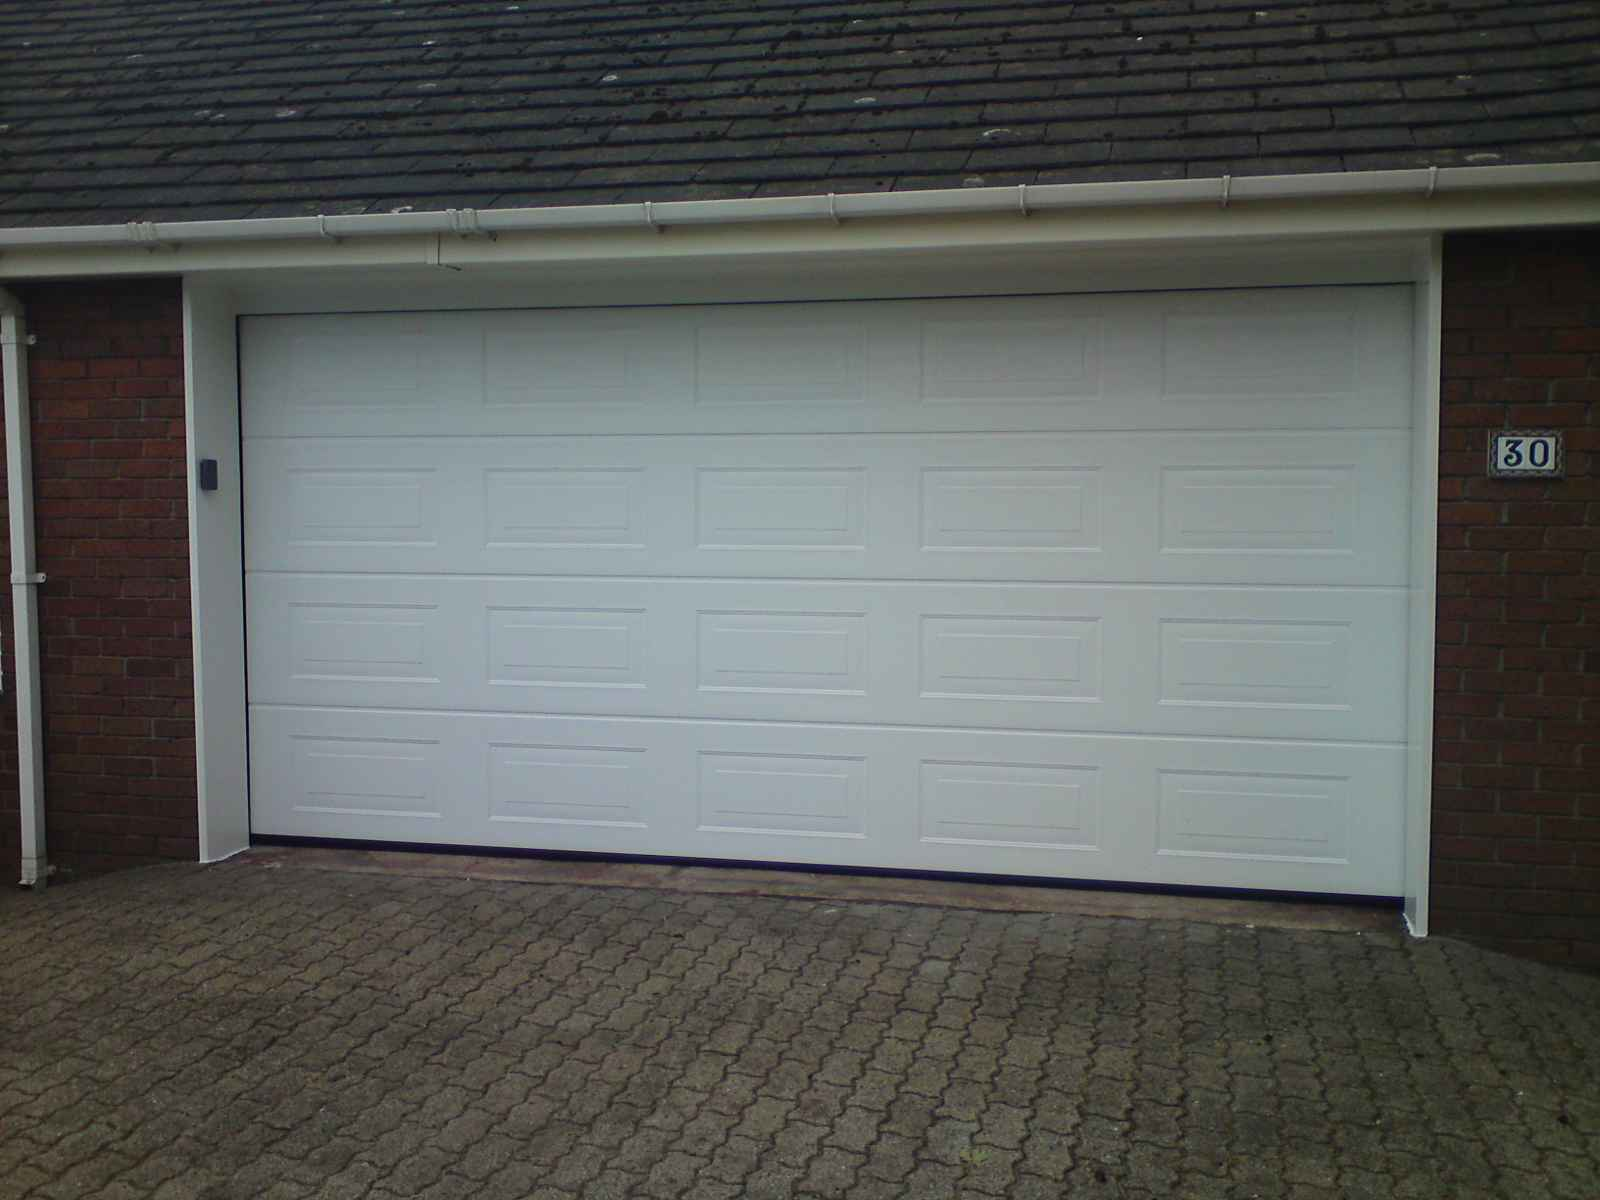 1200 #5B6970  Woodgrain Stylish Garage Door Clopay Coachman Affordable Garage Doors wallpaper Doors And Garage Doors 37151600